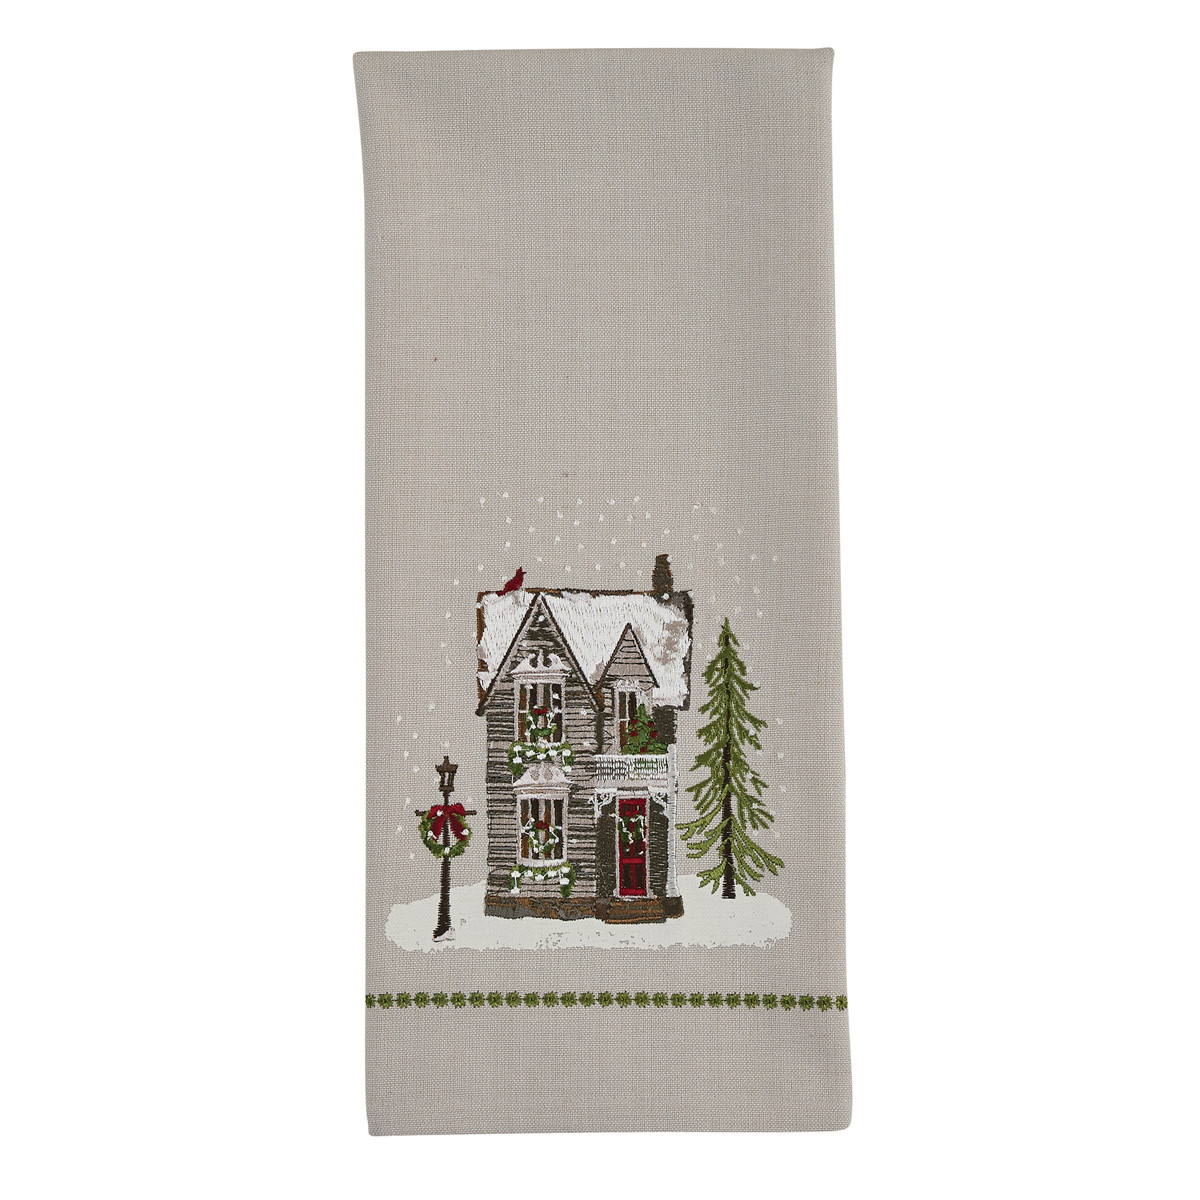 HOUSE PRINTED AND EMBROIDERED DISHTOWEL